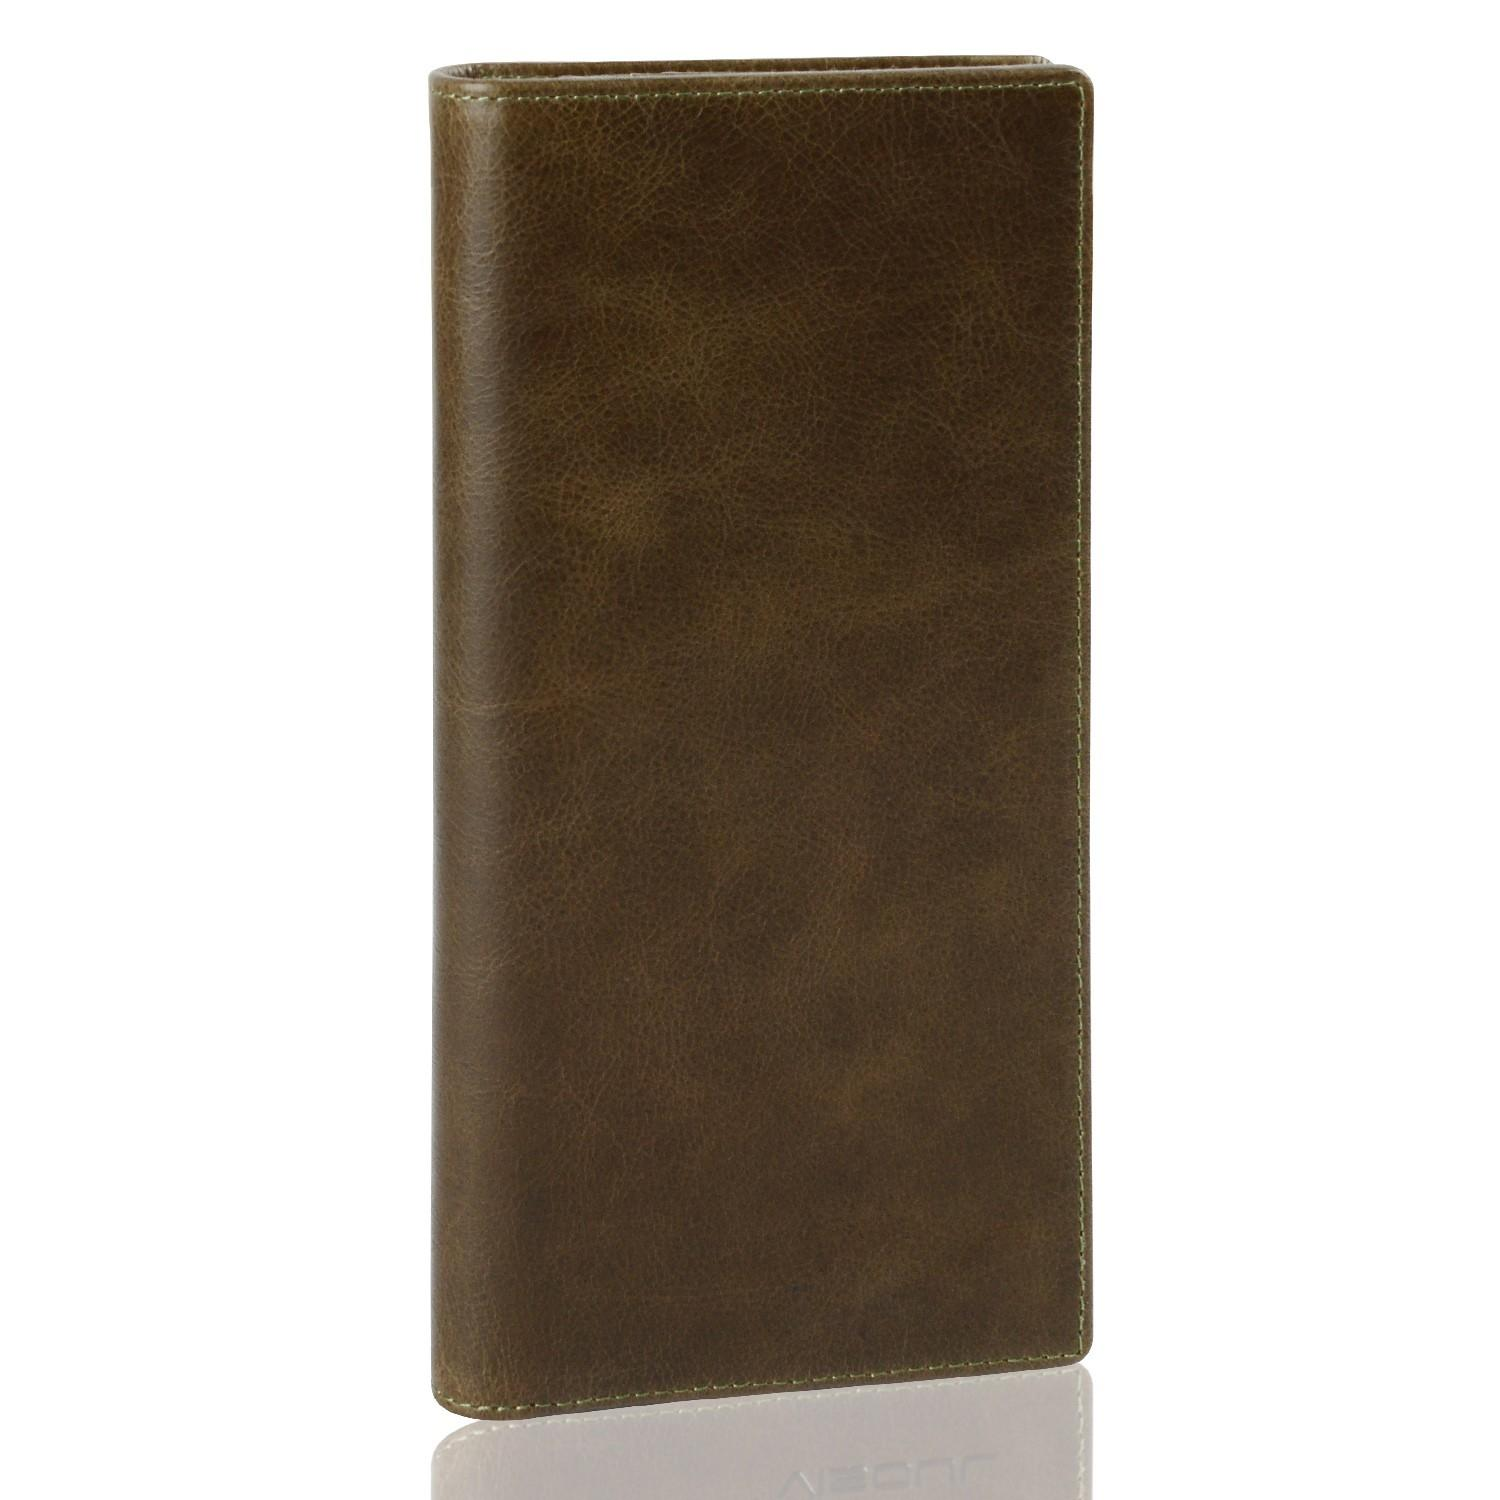 AIVI beautiful leather credit card wallet factory for iphone 8 / 8plus-2